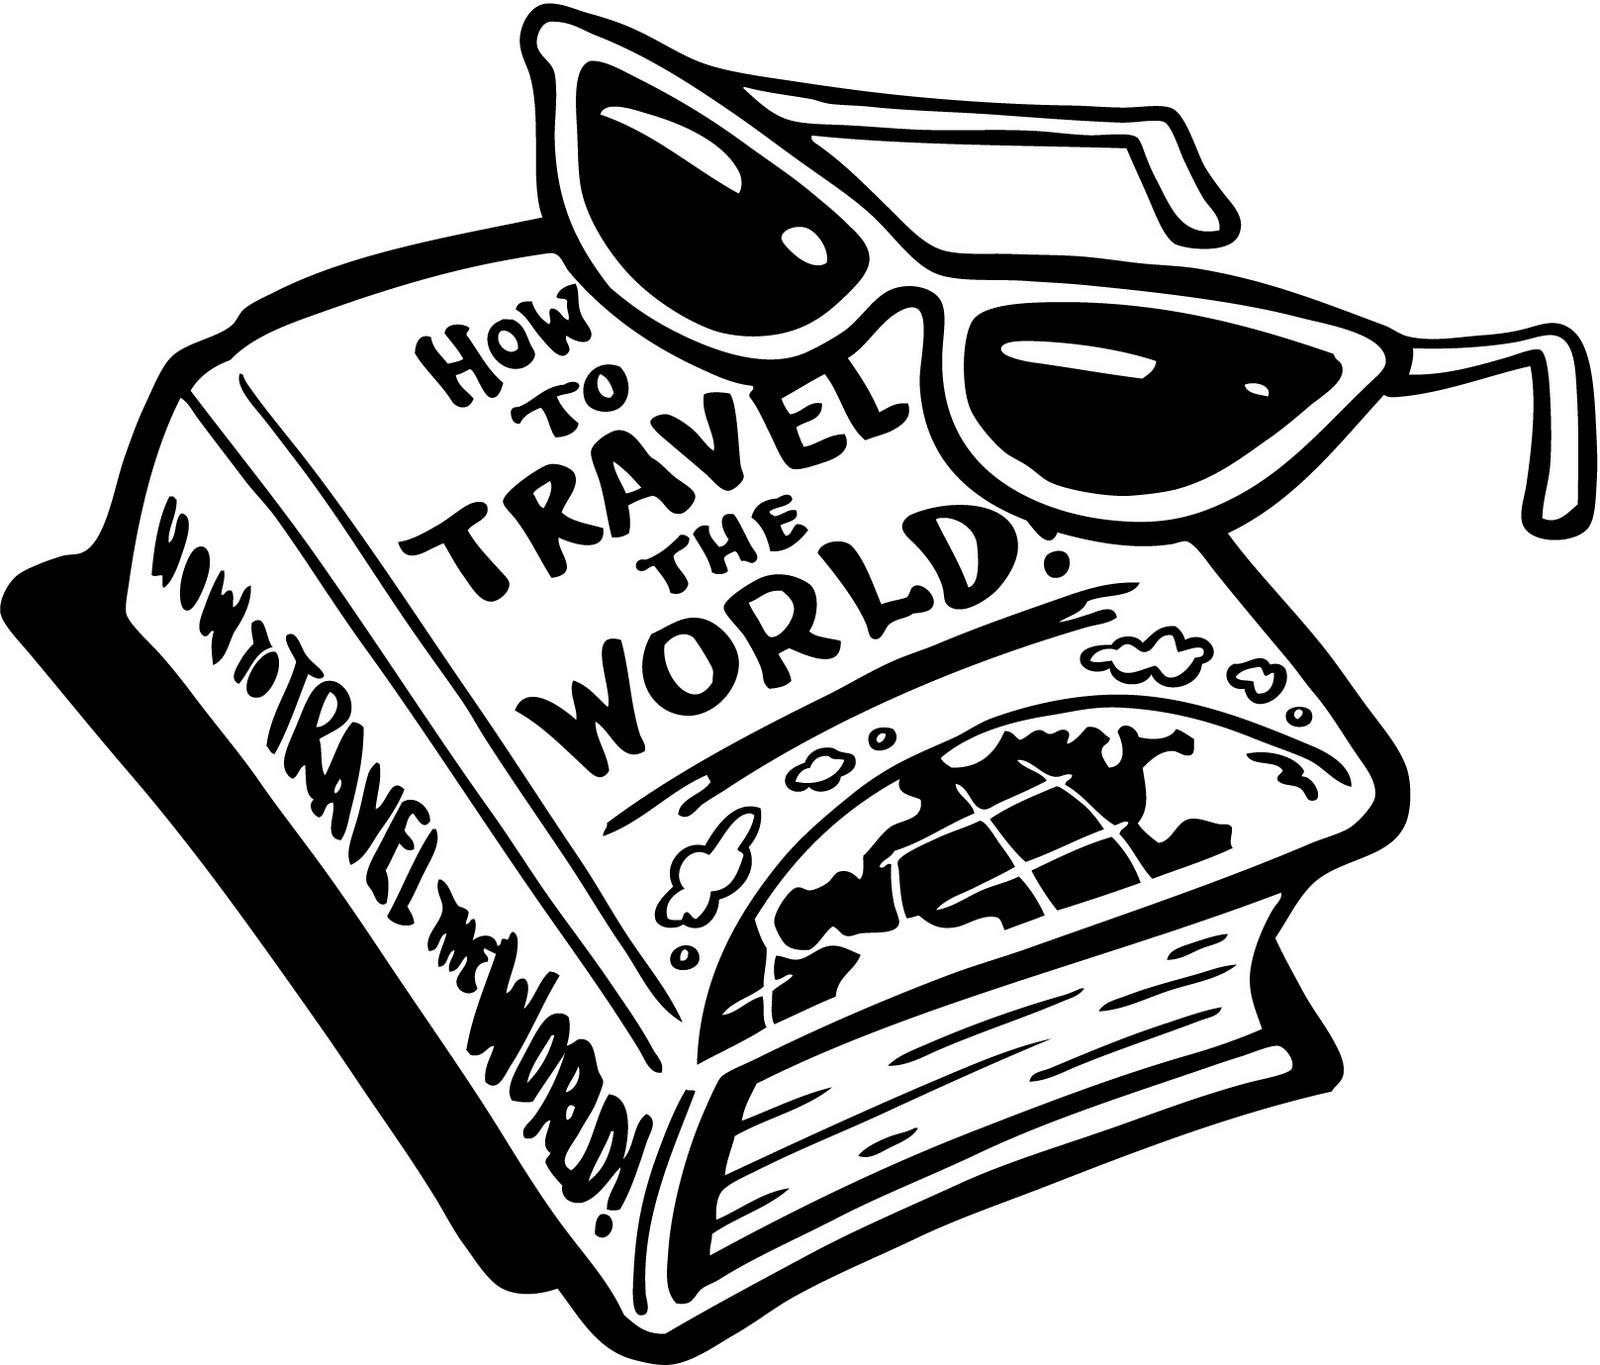 Unknown clipart black and white Clipart art black clipart travel